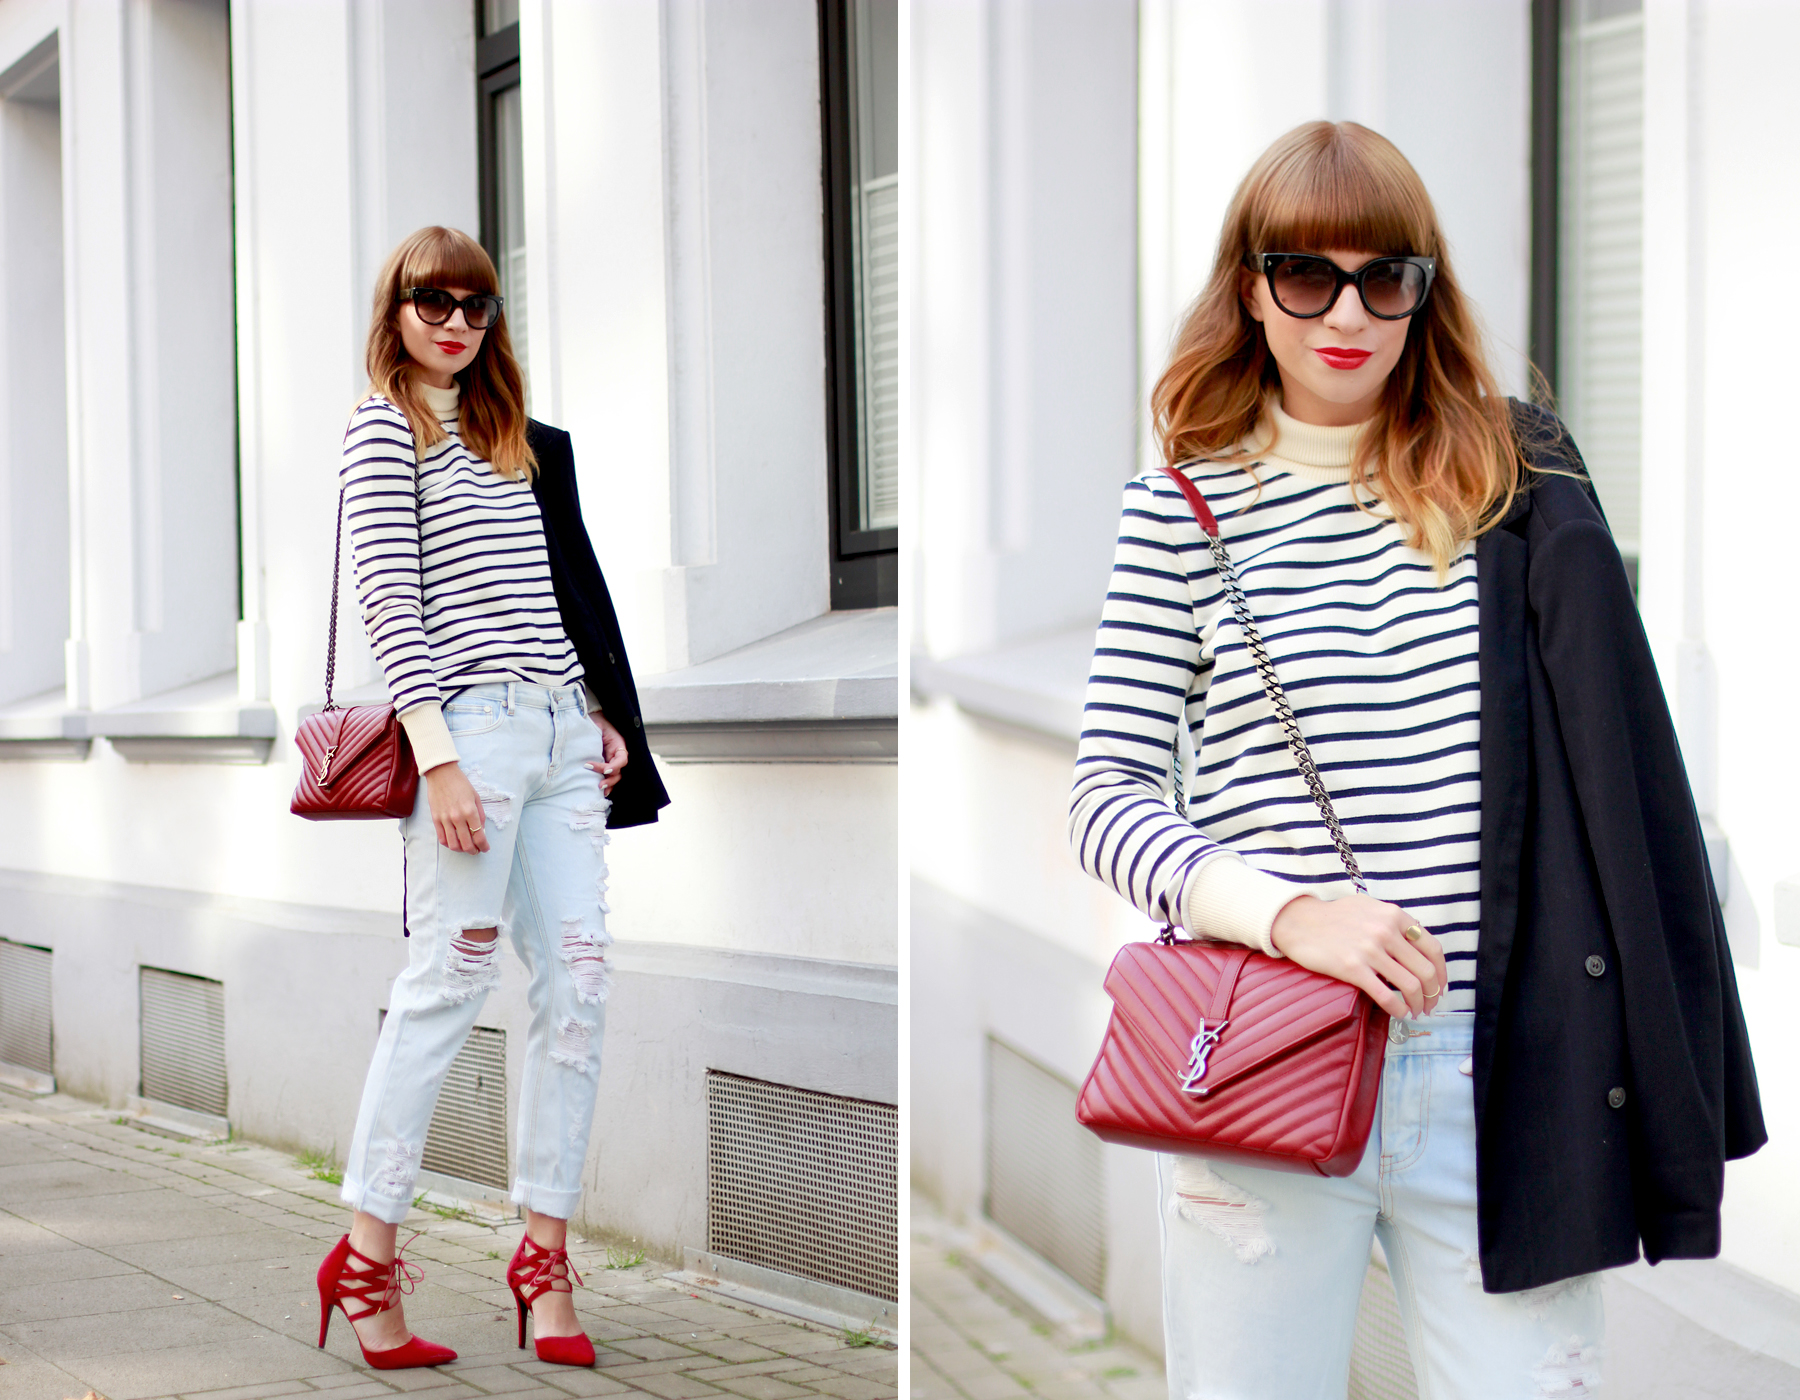 YSL Saint Laurent Paris outfit ootd styling fashion blogger stripe petit bateau one teaspoon aquazzura red minimal parisian cats & dogs blog ricarda schernus düsseldorf berlin 6